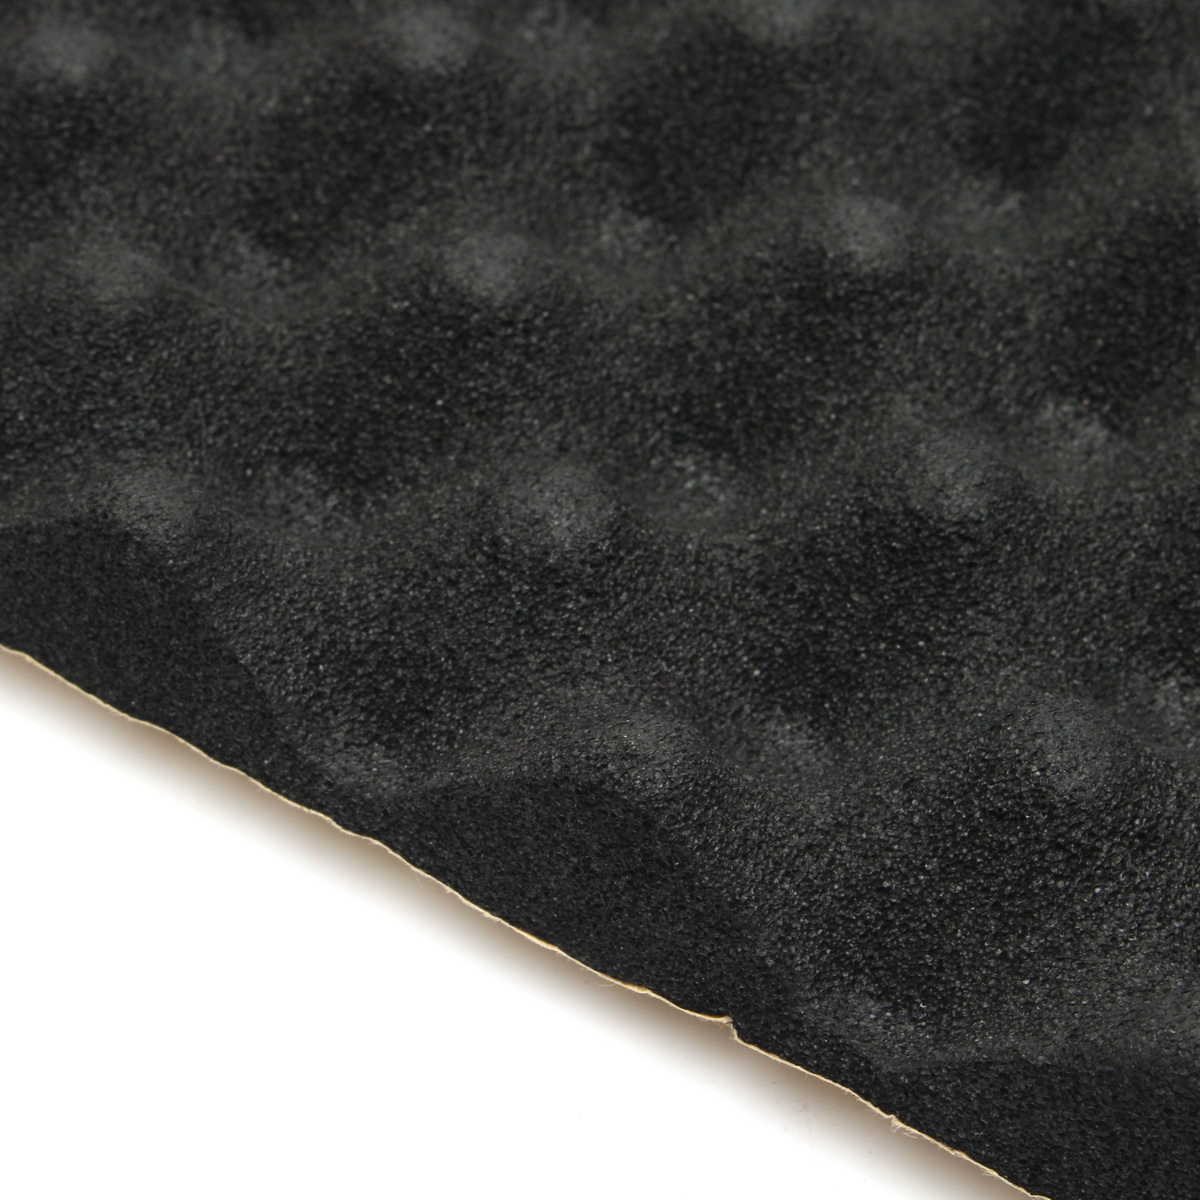 20mm Sound Absorber Acoustic Foam Self-adhesive for Studio 50x50cm